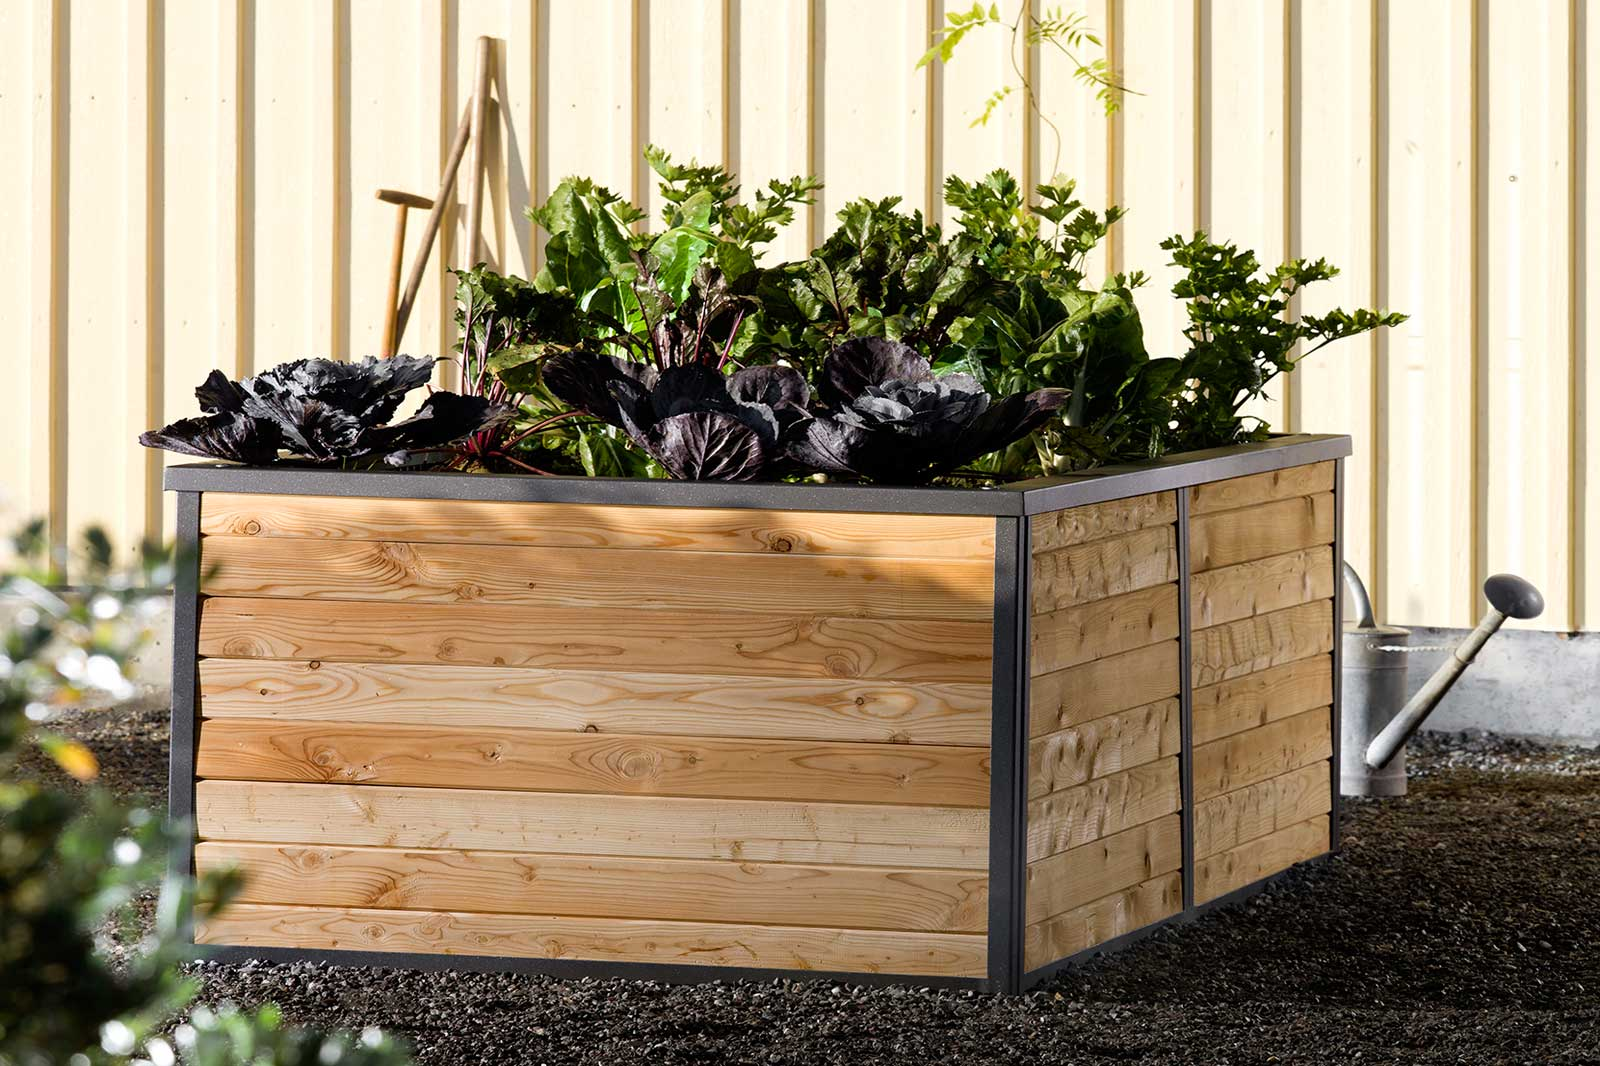 Sager Gartengalerie AG has developed raised beds for use in the garden for balcony